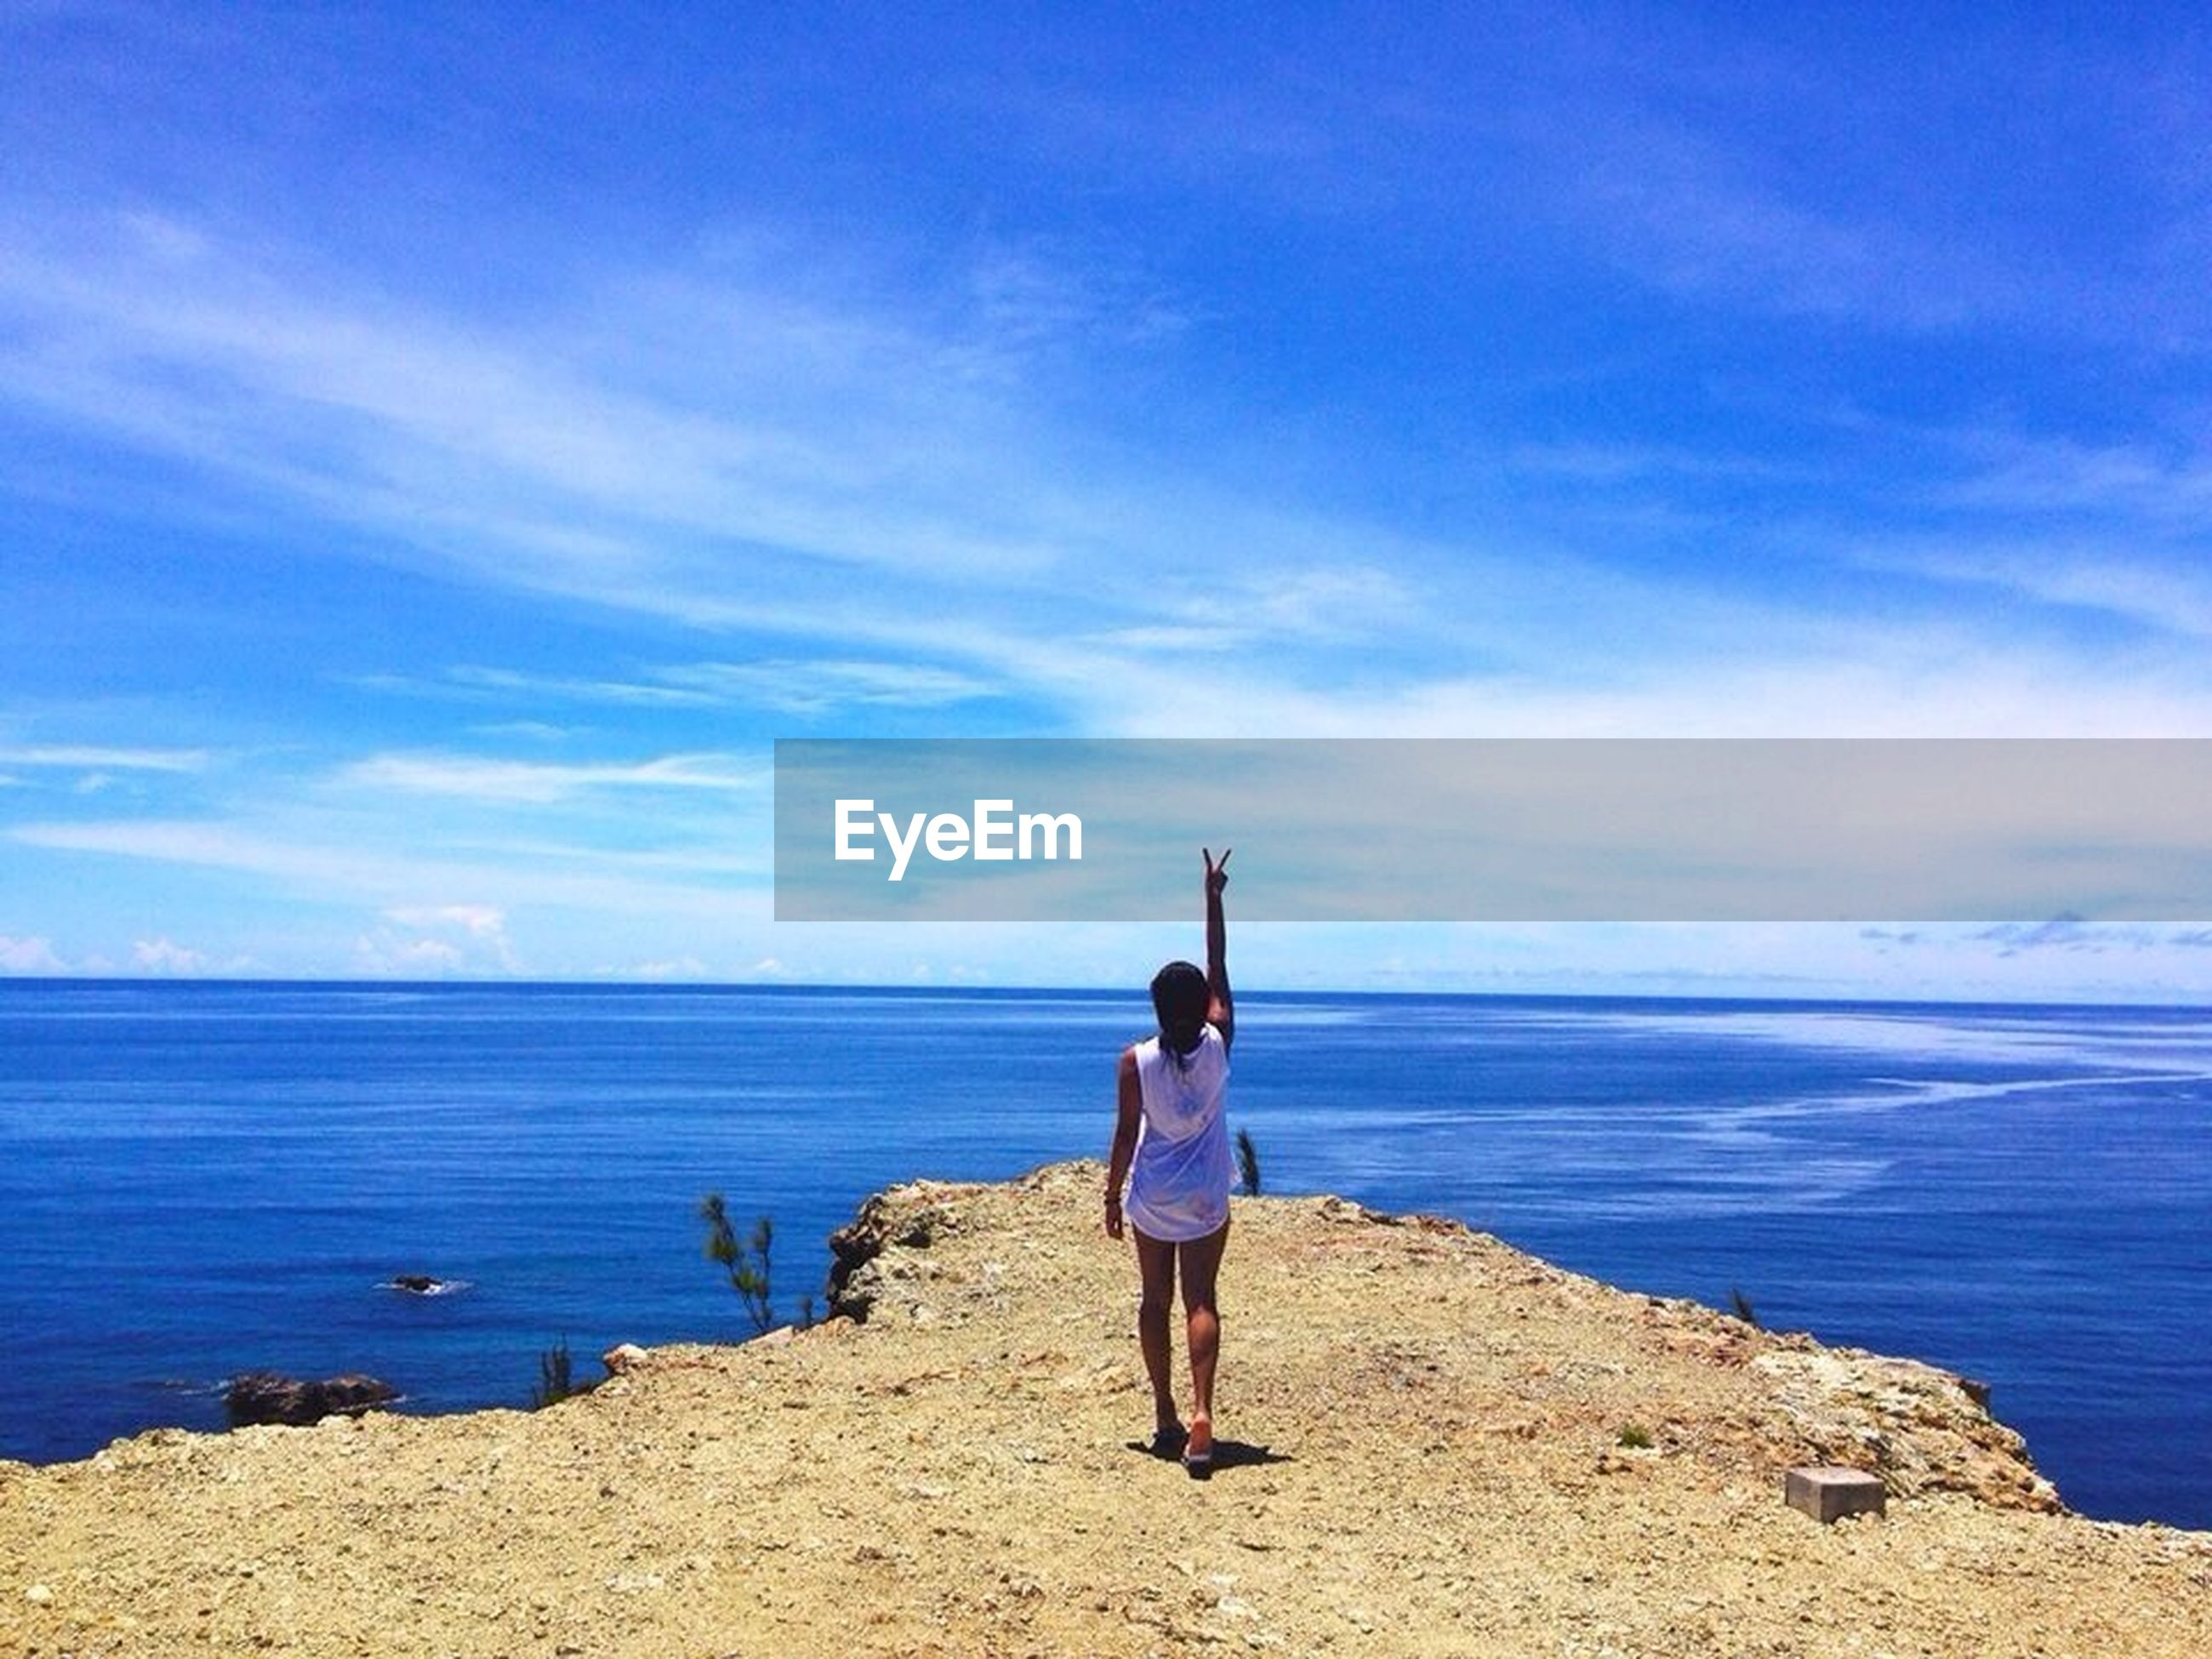 sea, rear view, water, full length, horizon over water, sky, beach, blue, lifestyles, tranquility, tranquil scene, leisure activity, standing, scenics, shore, beauty in nature, casual clothing, person